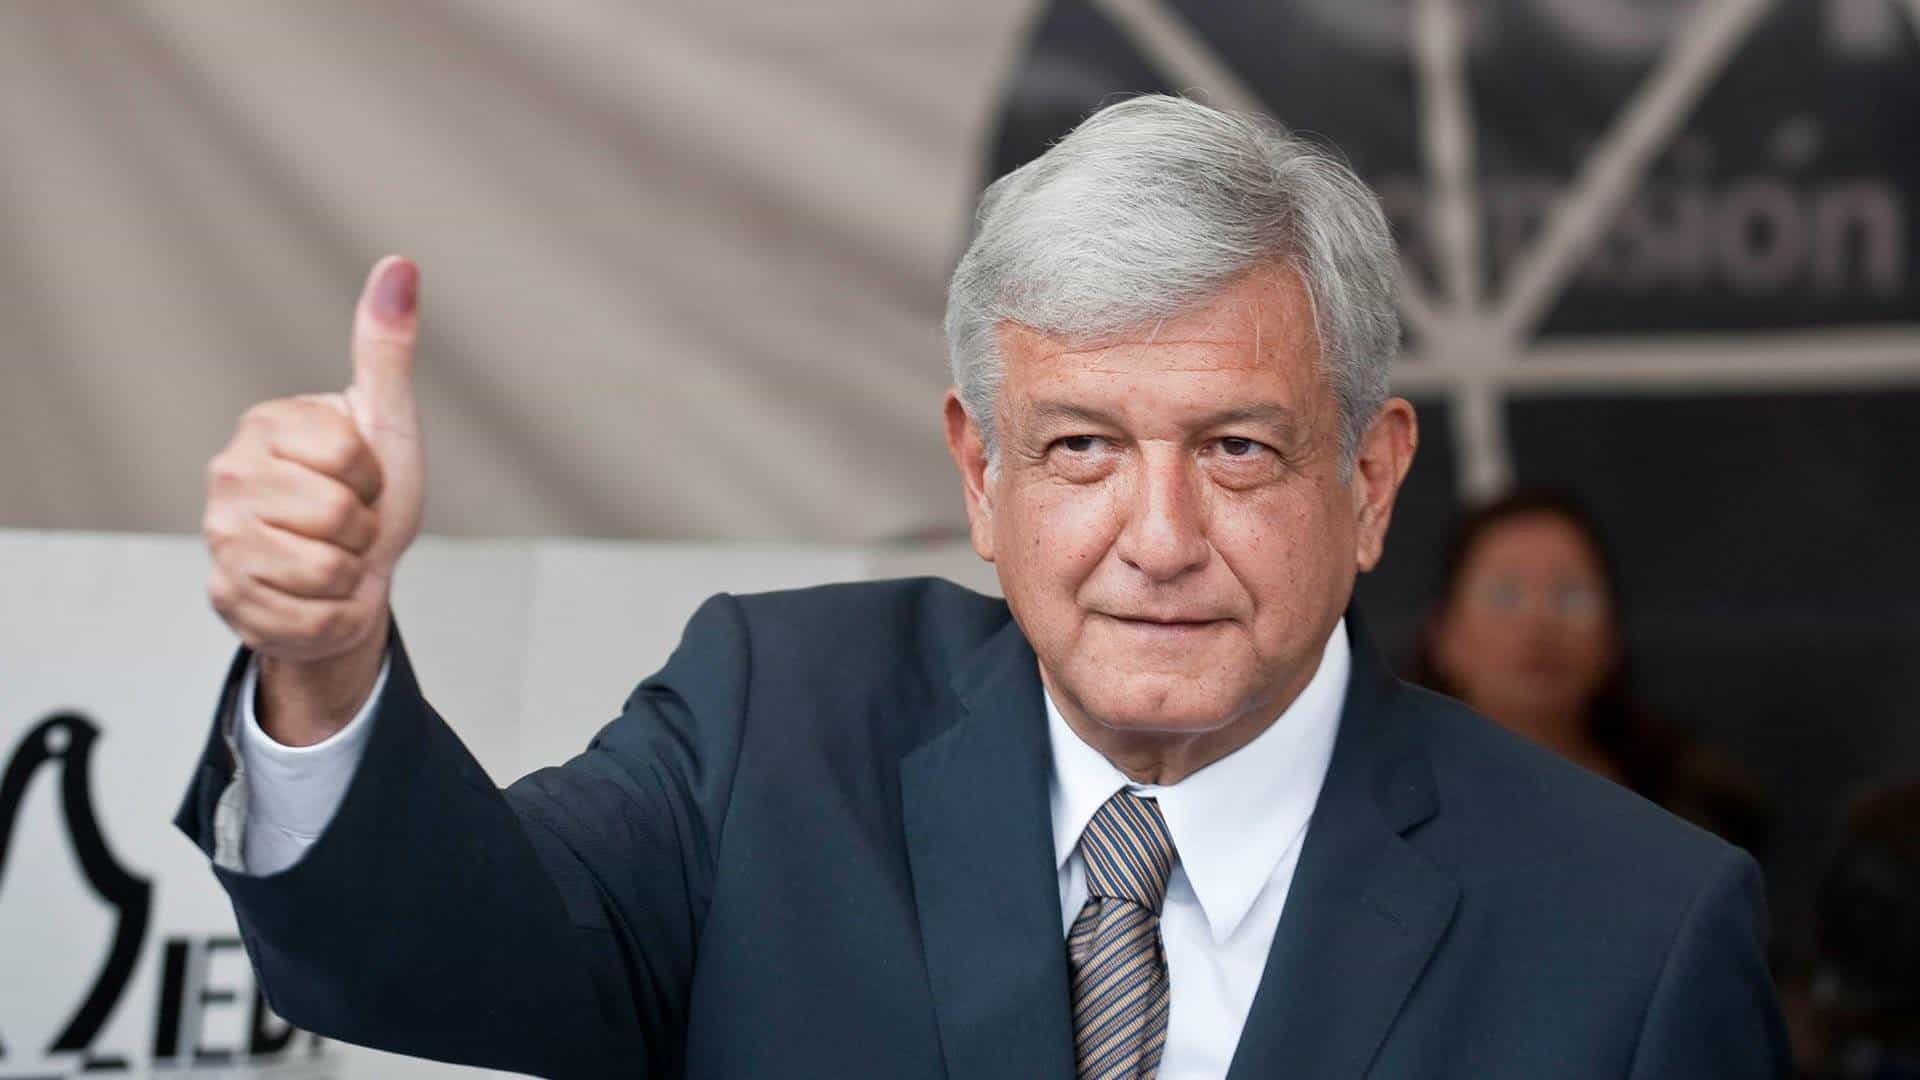 López Obrador, con apoyo de Rusia: The Washington Post